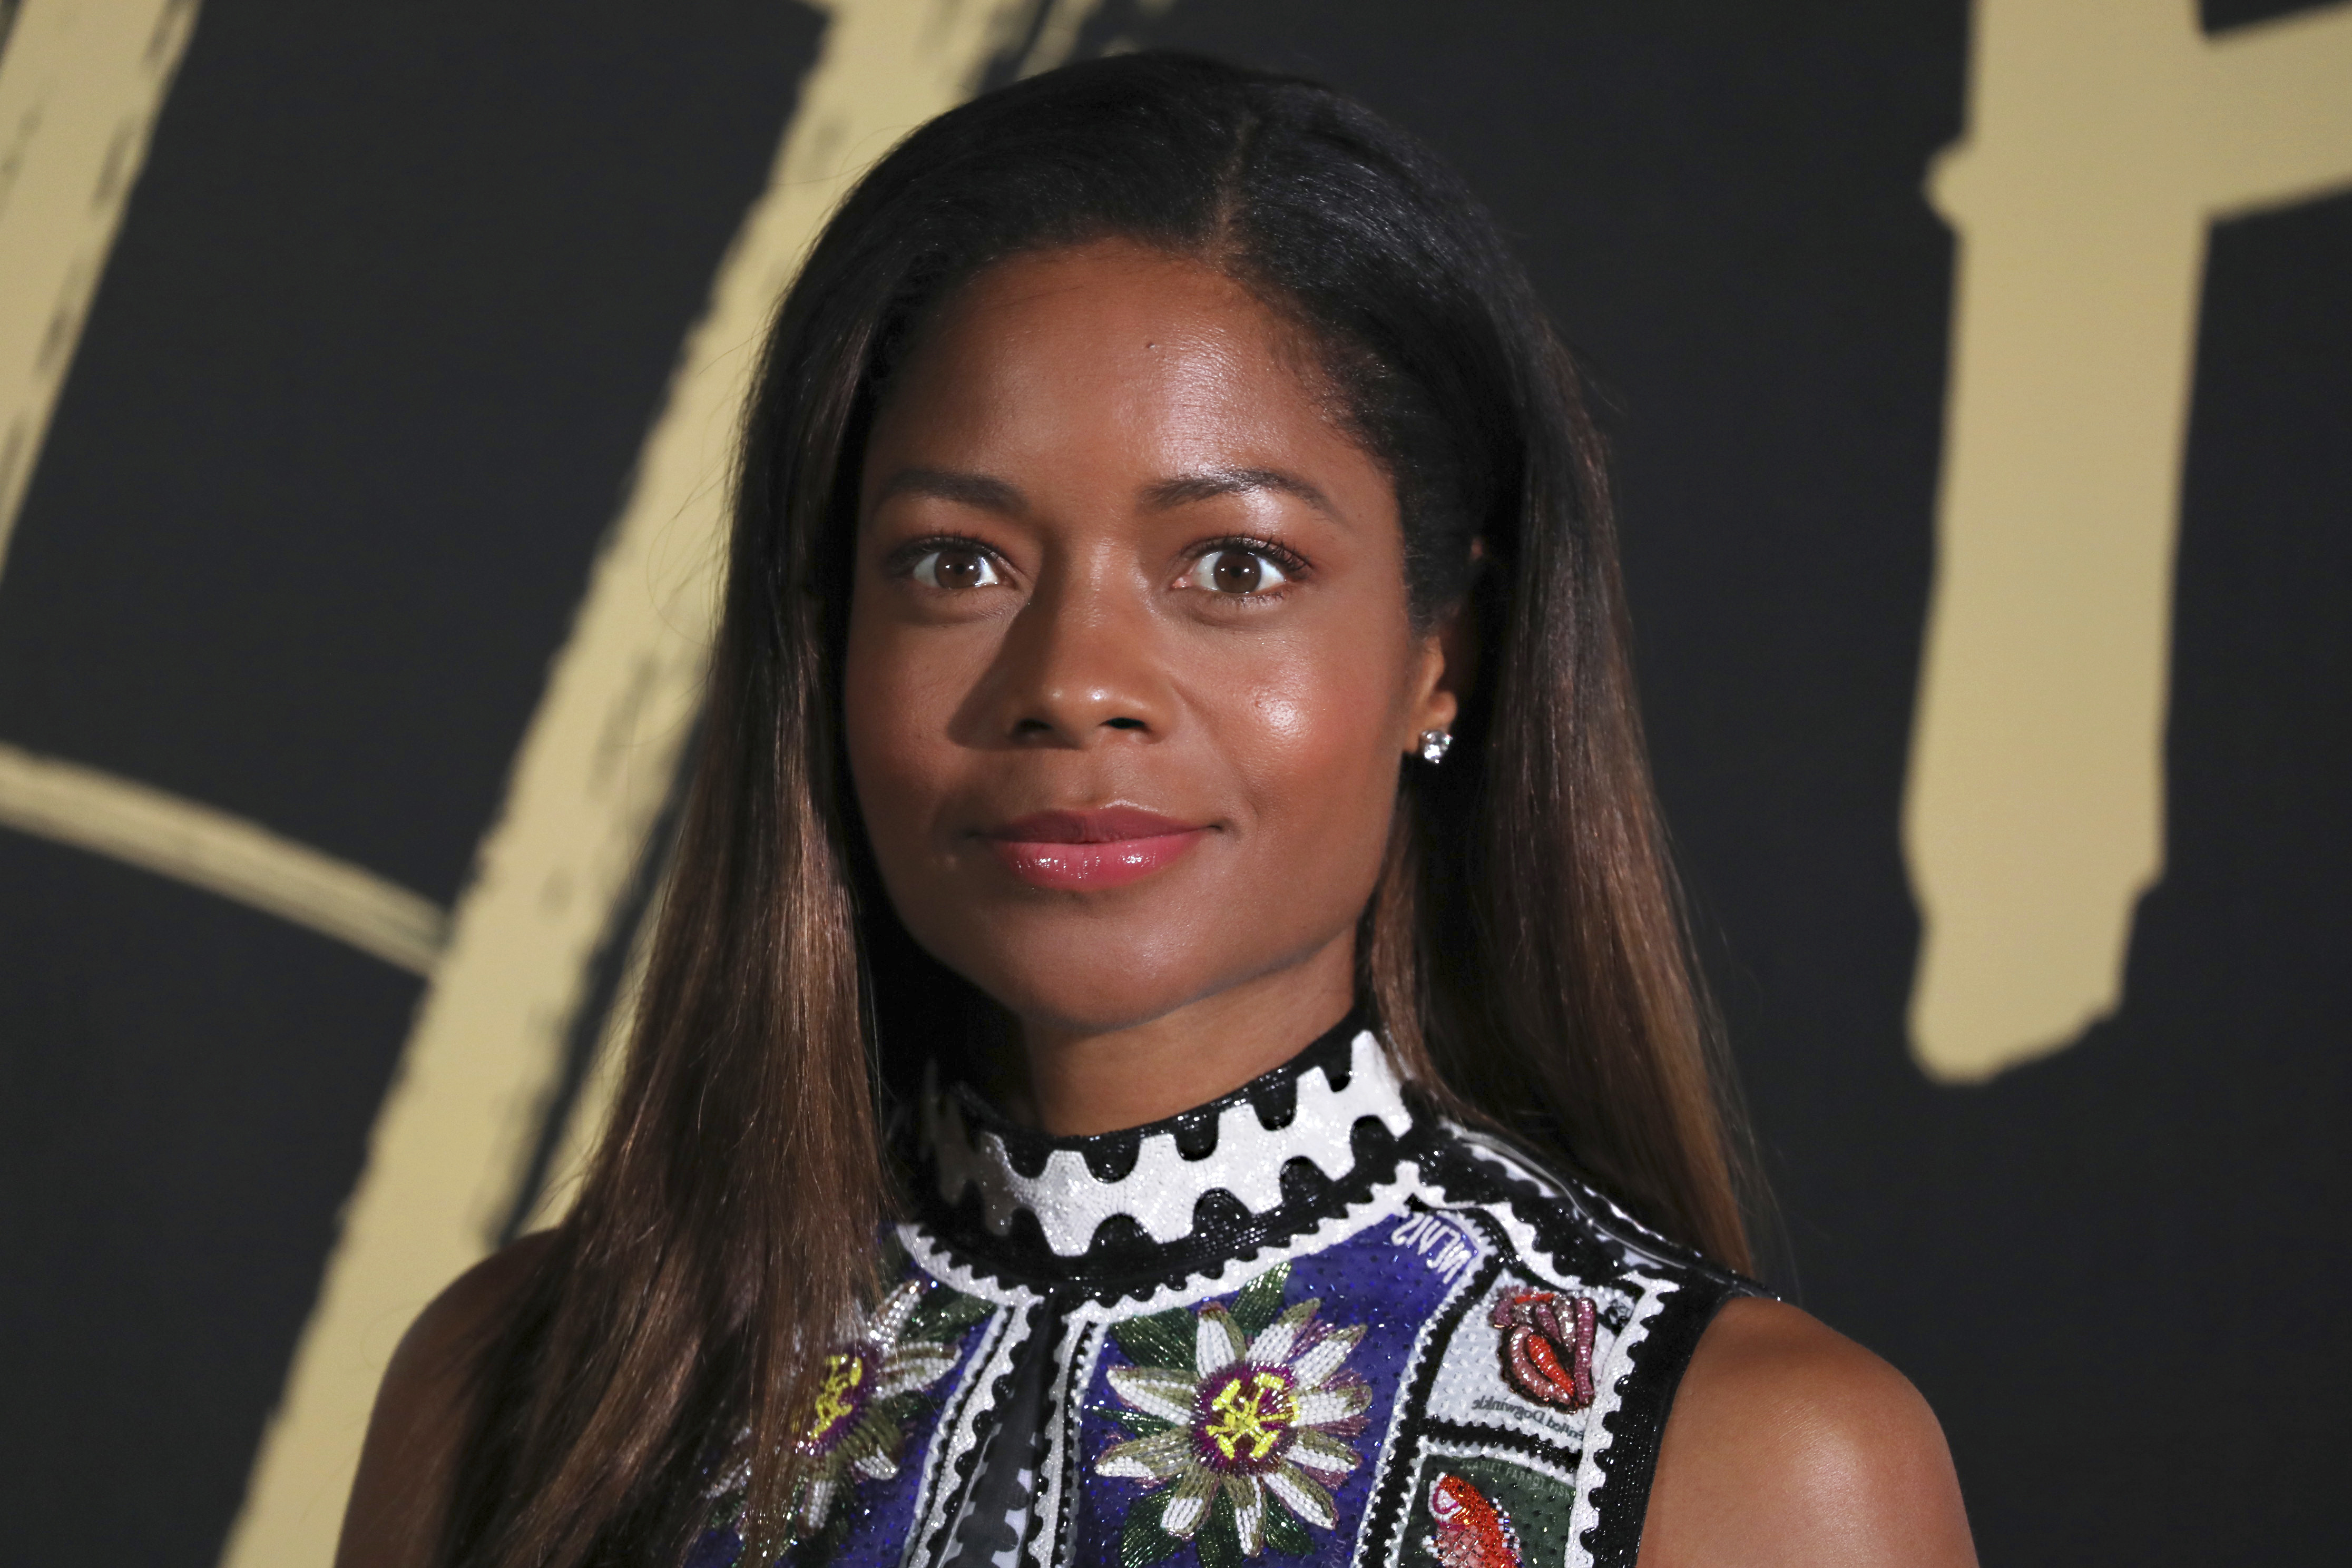 Actress Naomie Harris poses for photographers upon arrival at the Fashion For Relief charity event in central London, Saturday, Sept. 14, 2019. (Photo by Vianney Le Caer/Invision/AP)